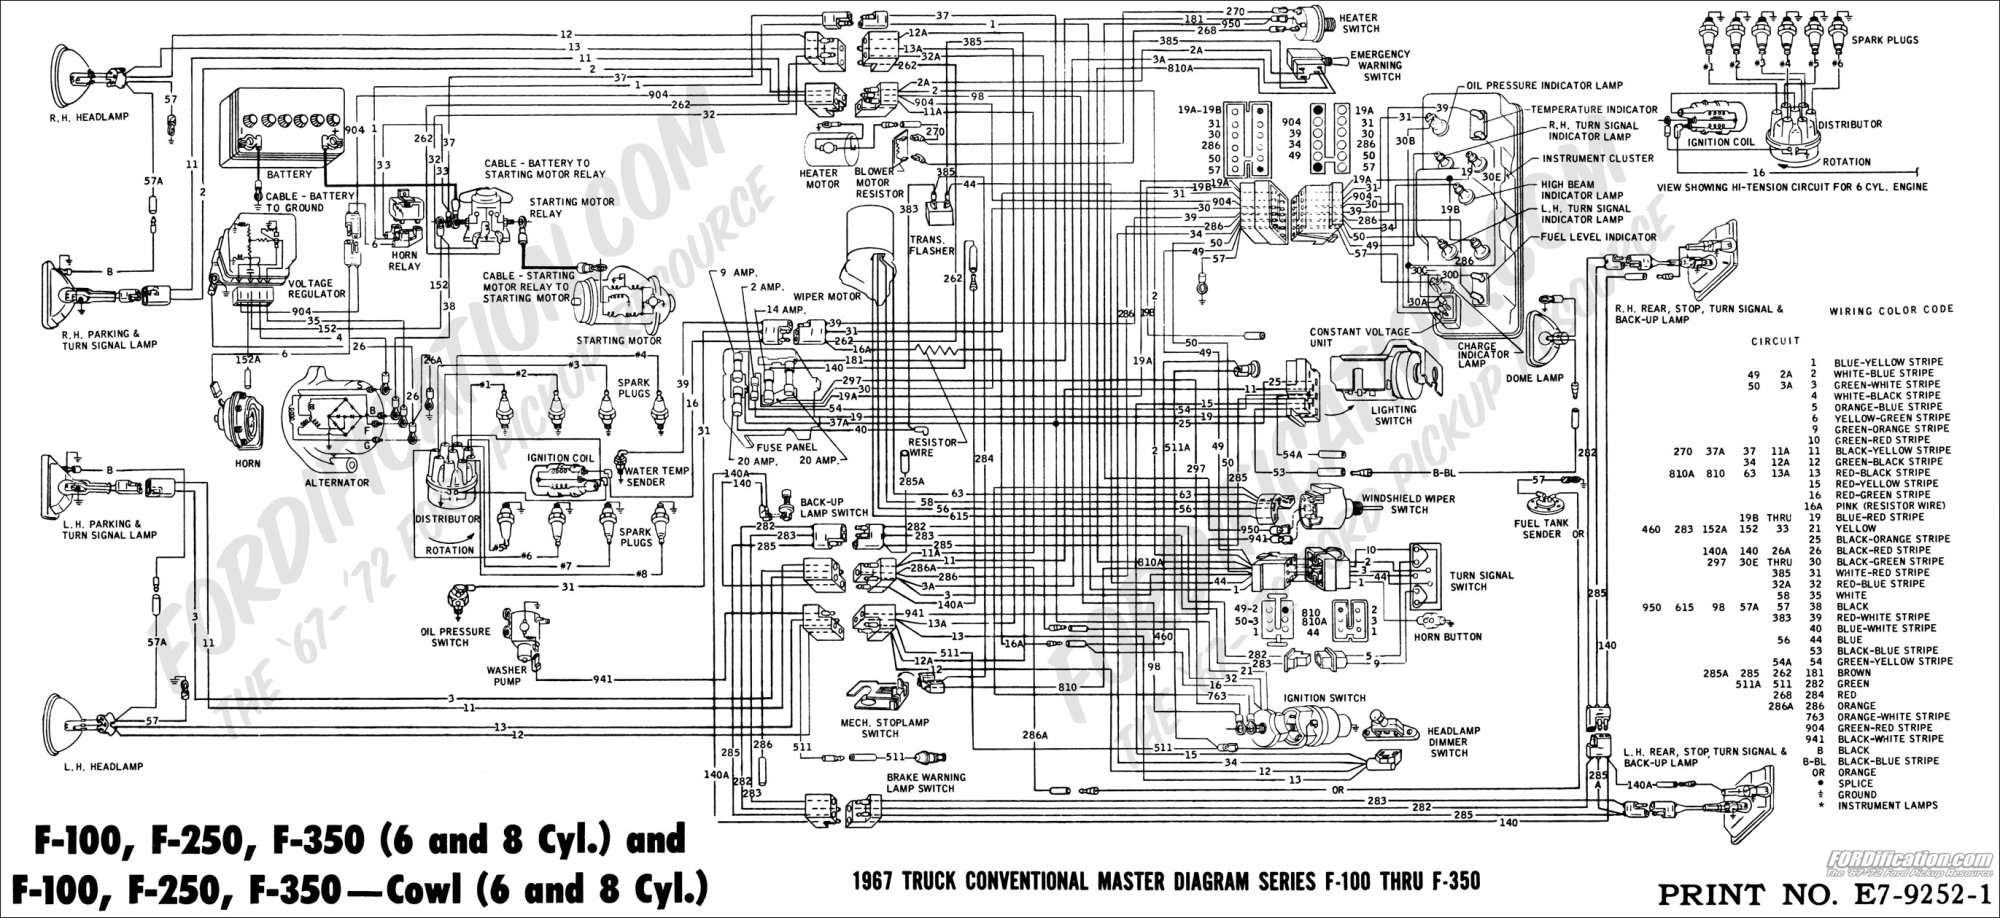 hight resolution of 2001 f350 wiring diagram wiring diagram for you ford truck wiring diagrams 2001 f250 wiring diagram